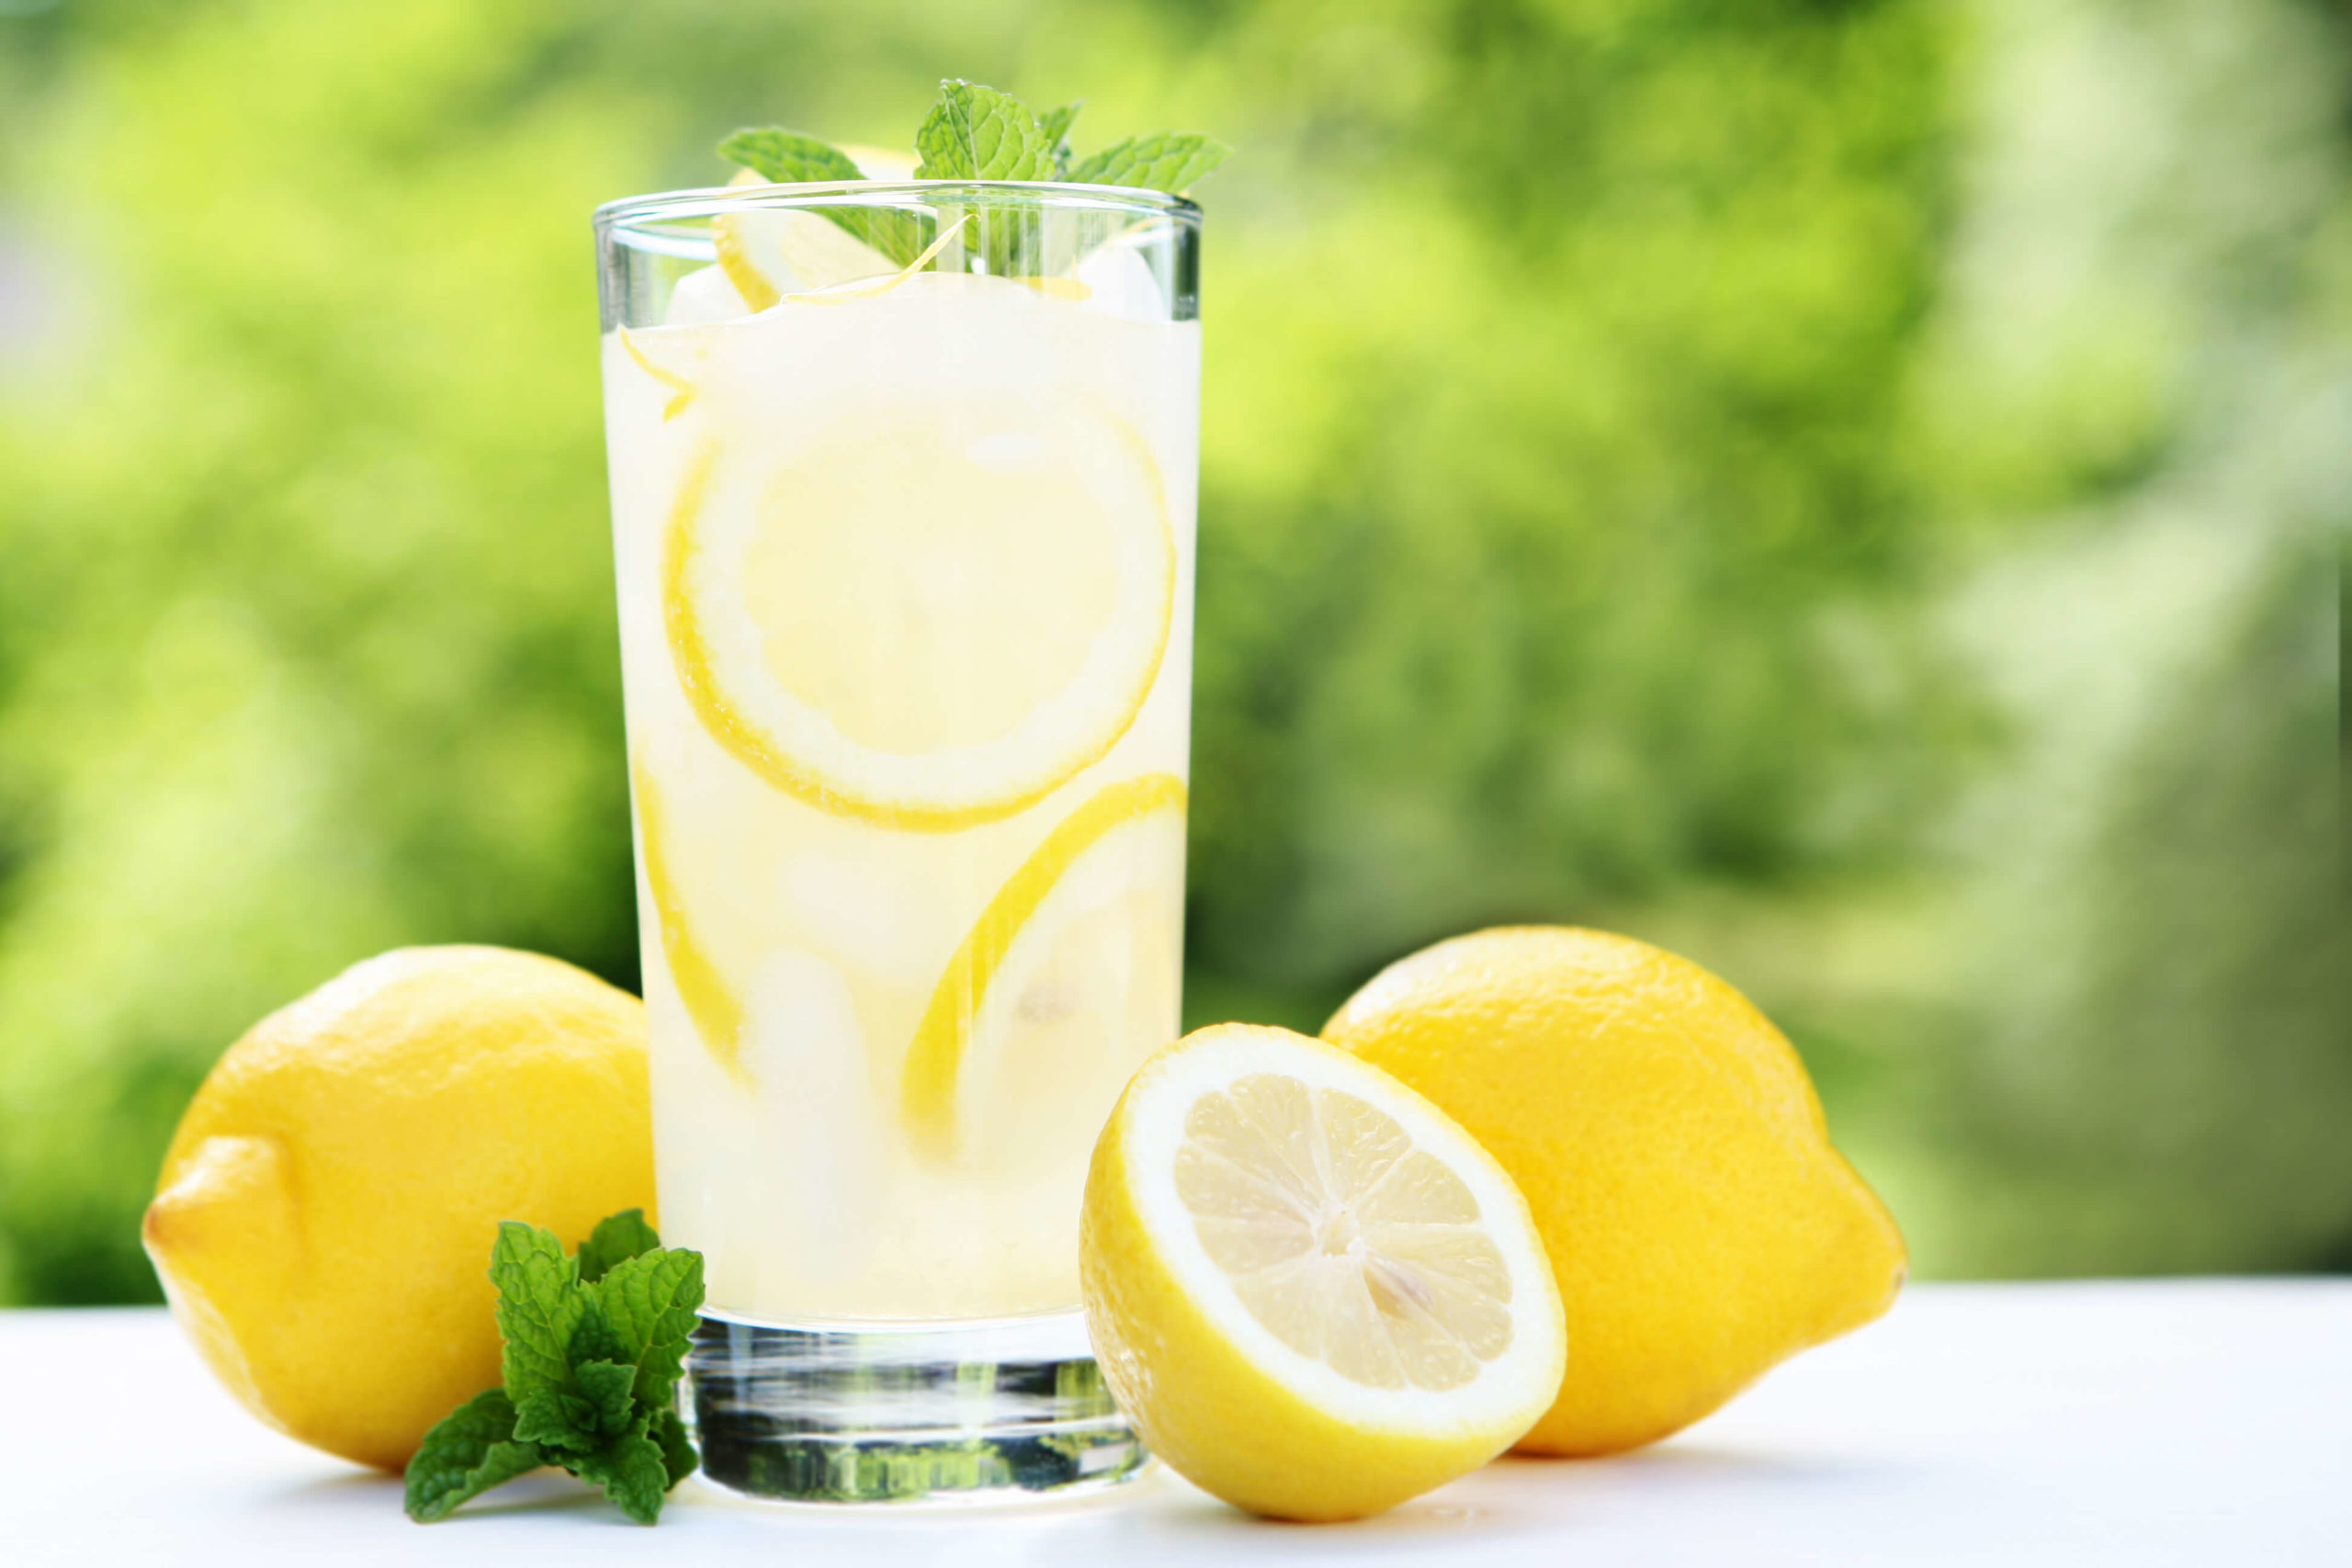 Cup of fresh lemonade with lemons on table and mint garnish in glass